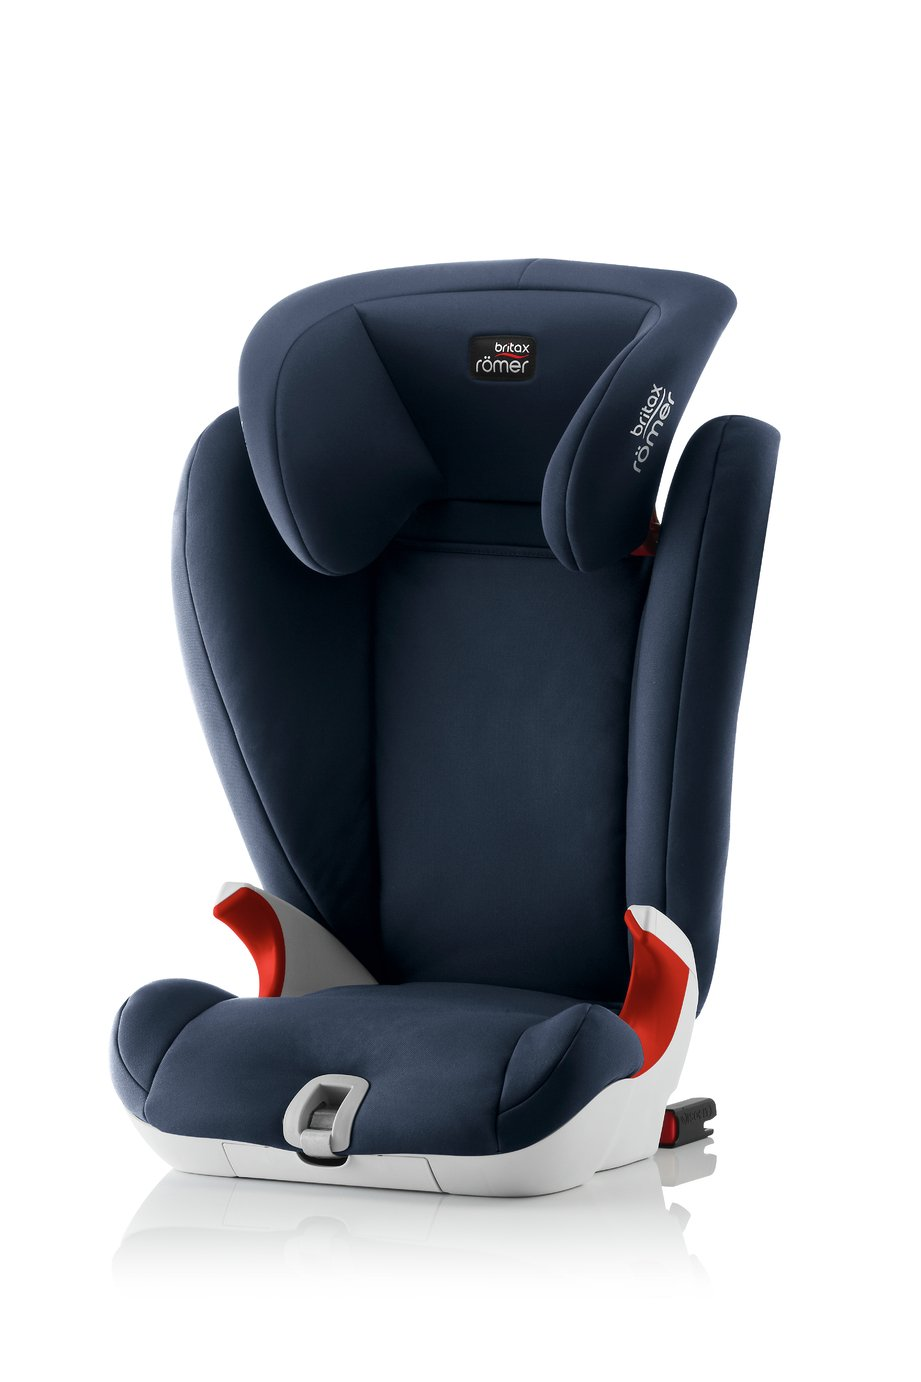 Image of Britax Romer KIDFIX SL Group 2-3 Car Seat ??? Ocean Blue